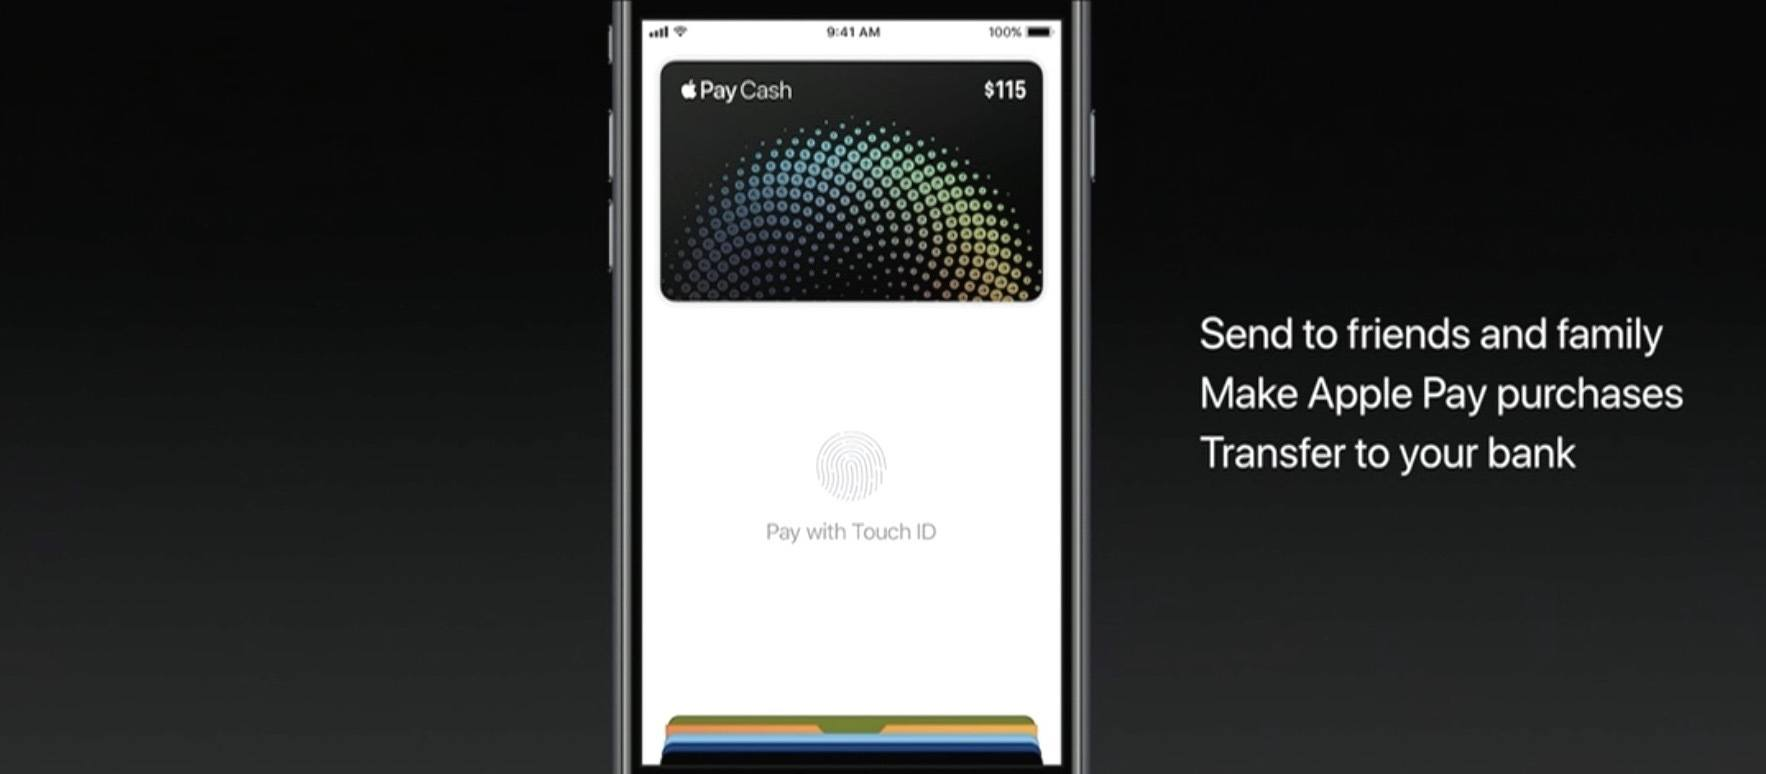 www.italiamac.it apple pay cash in arrivo a fine ottobre wwdc 2017 apple pay cash card Apple Pay Cash in arrivo a fine Ottobre?